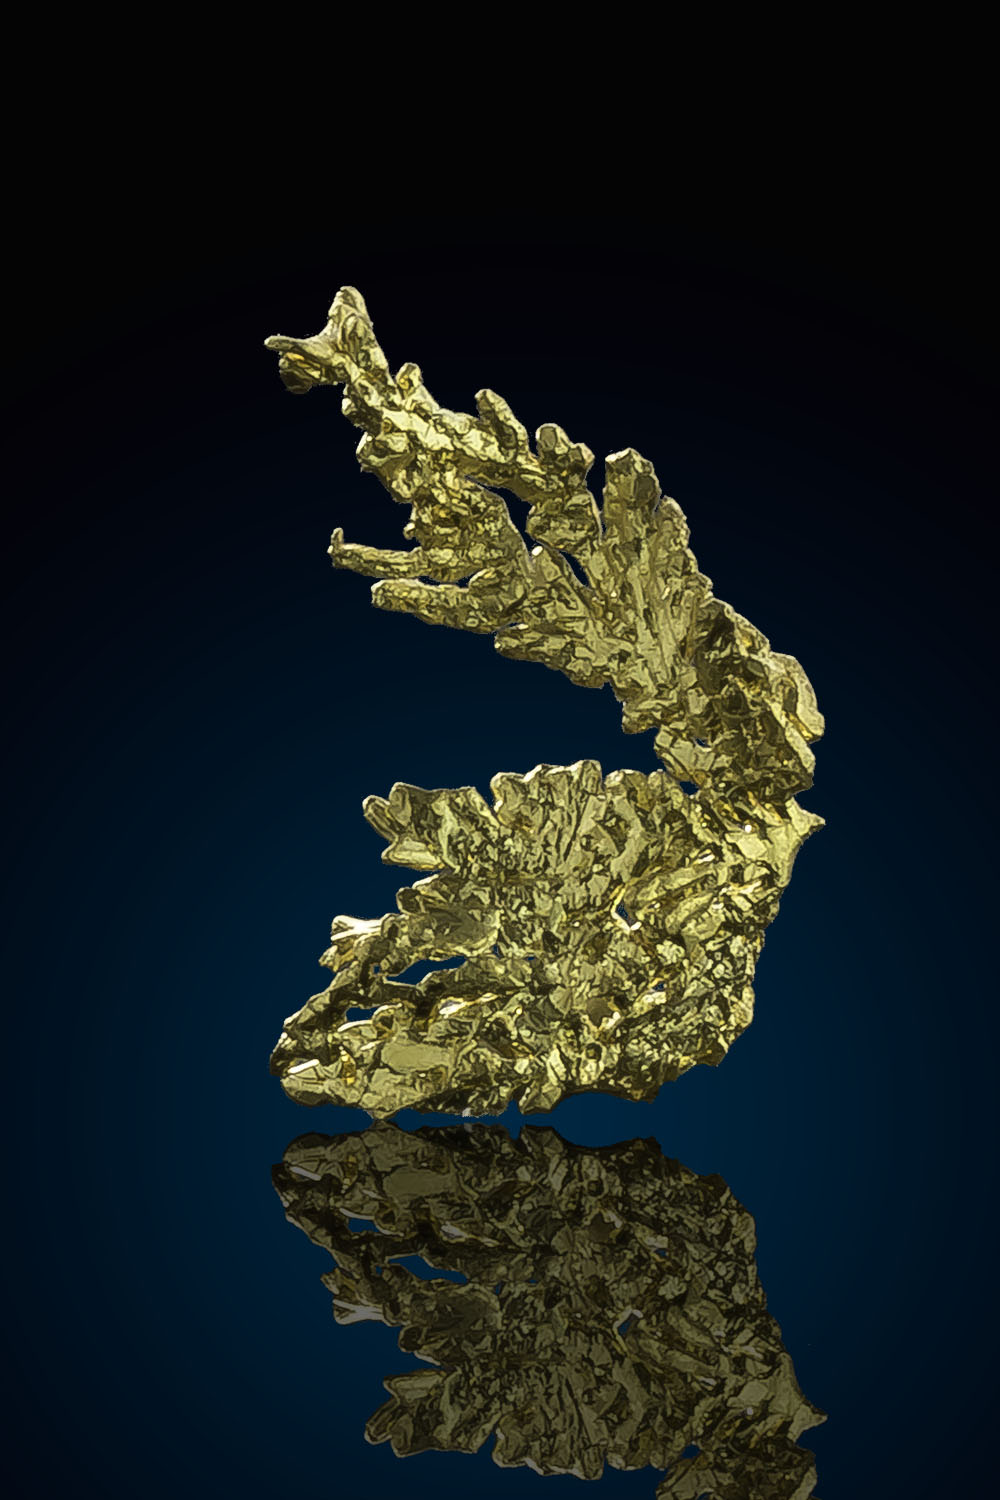 Dendritic Gold Crystal - Eagles Nest Gold mine